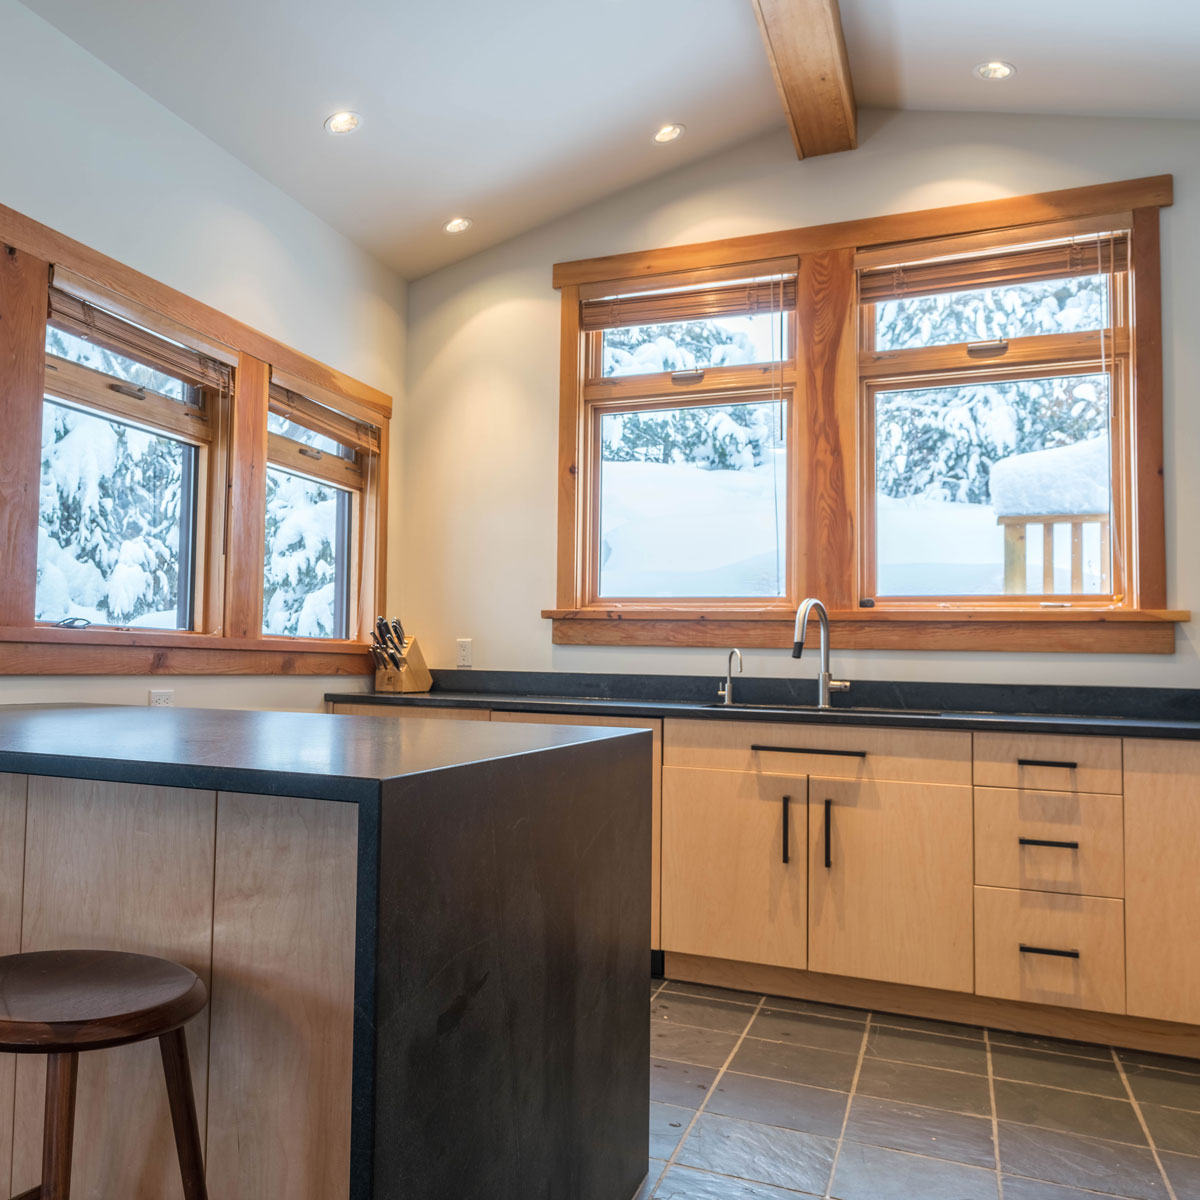 Venetian Plaster Painter In Fernie Sparwood Bc Interior Commercial And Residential Painting Company